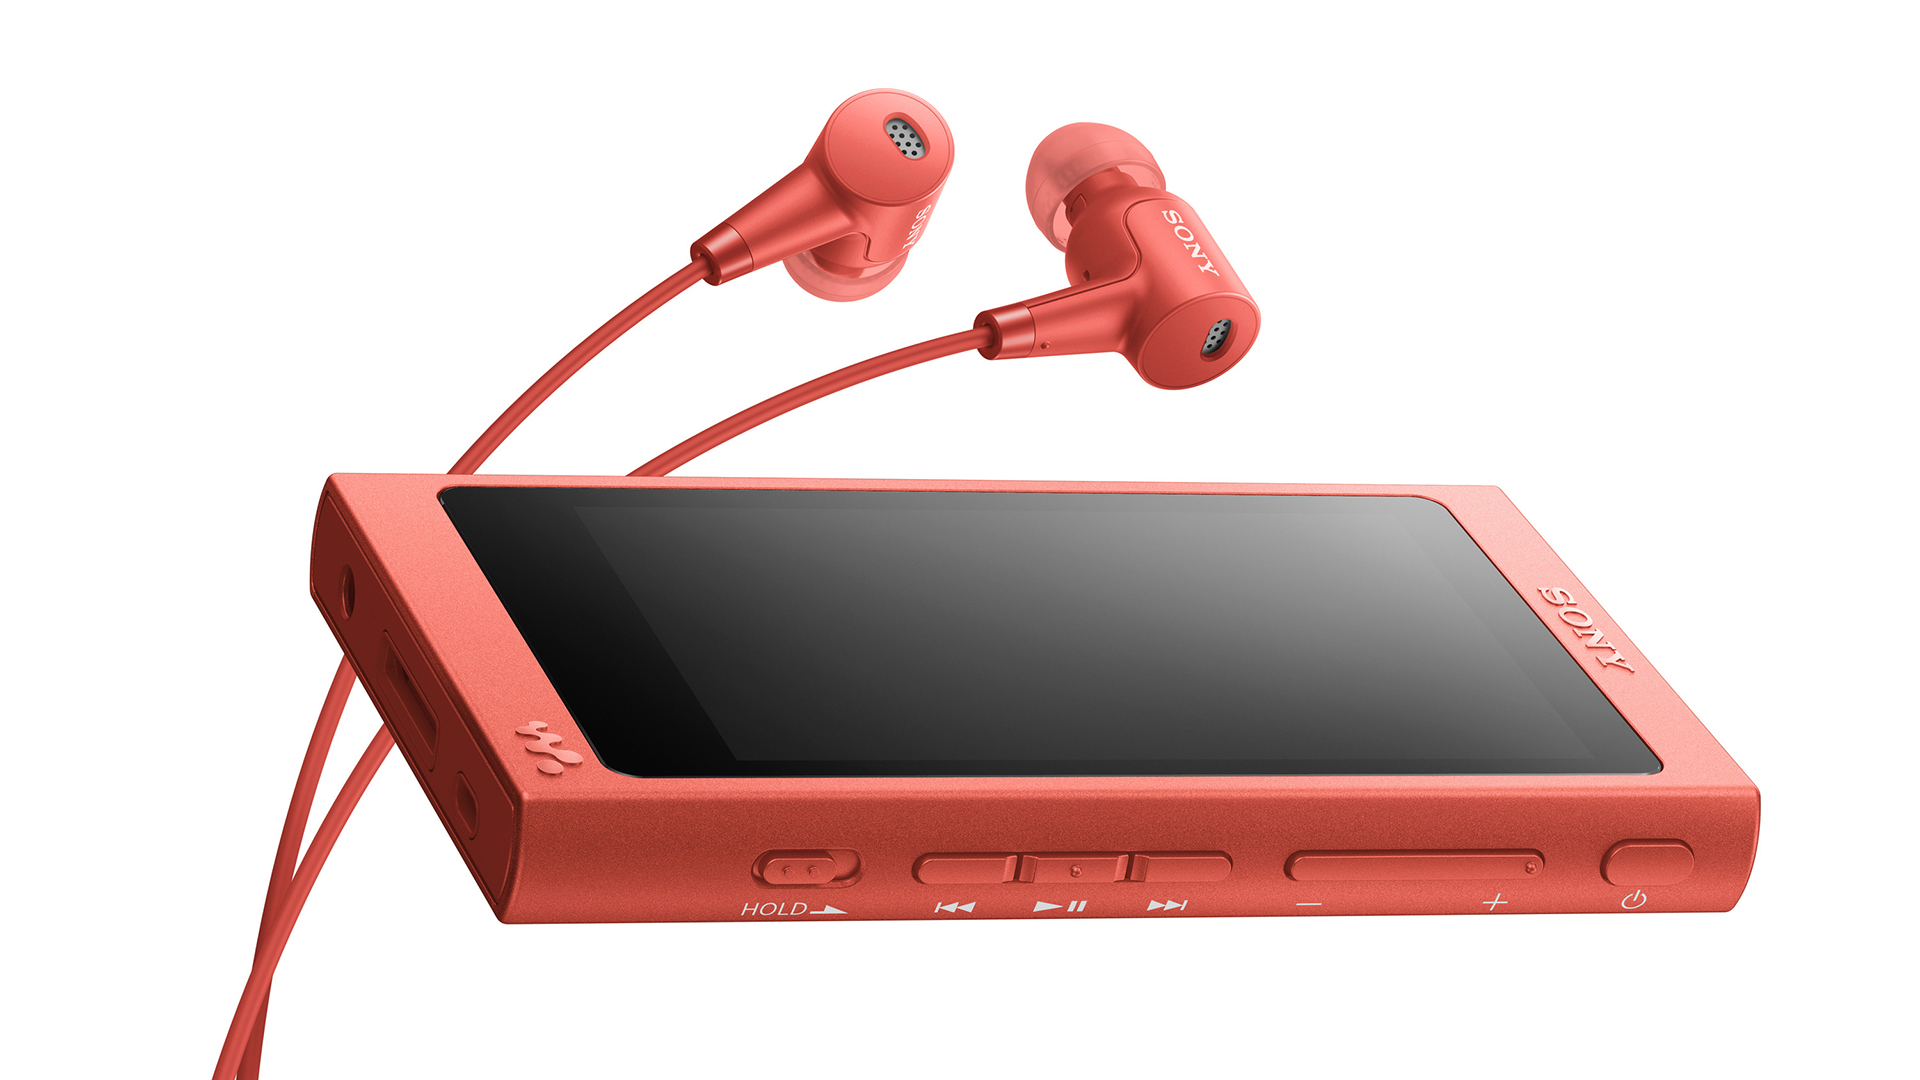 A new Sony Walkman could be on the way with Bluetooth 5 0 and wi-fi